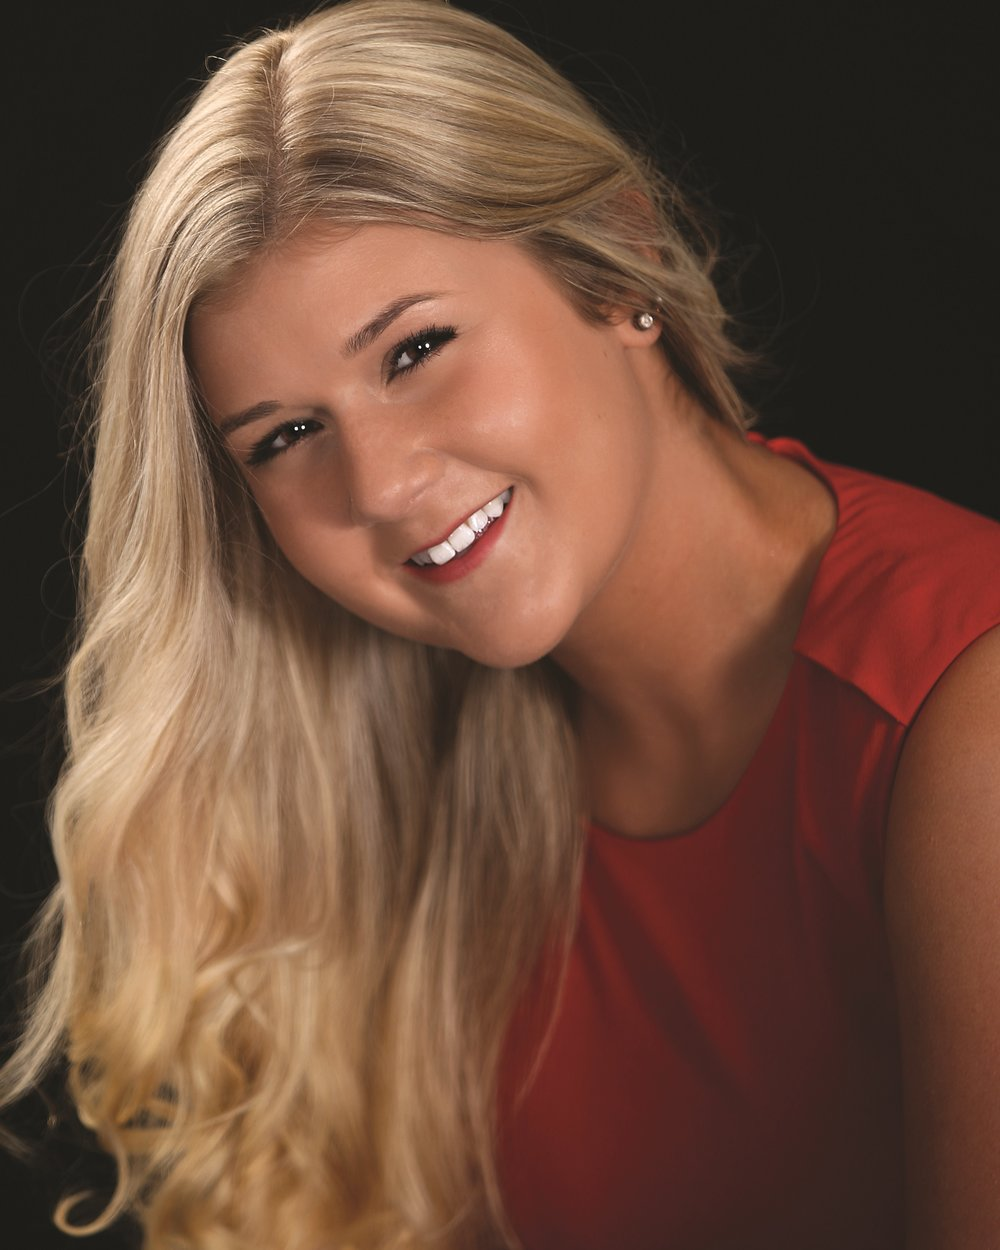 CHELSEA CIRILLO    Fulton County   Talent:  Singing and playing guitar   Platform:  Easing the Burden of Poverty for Local Families